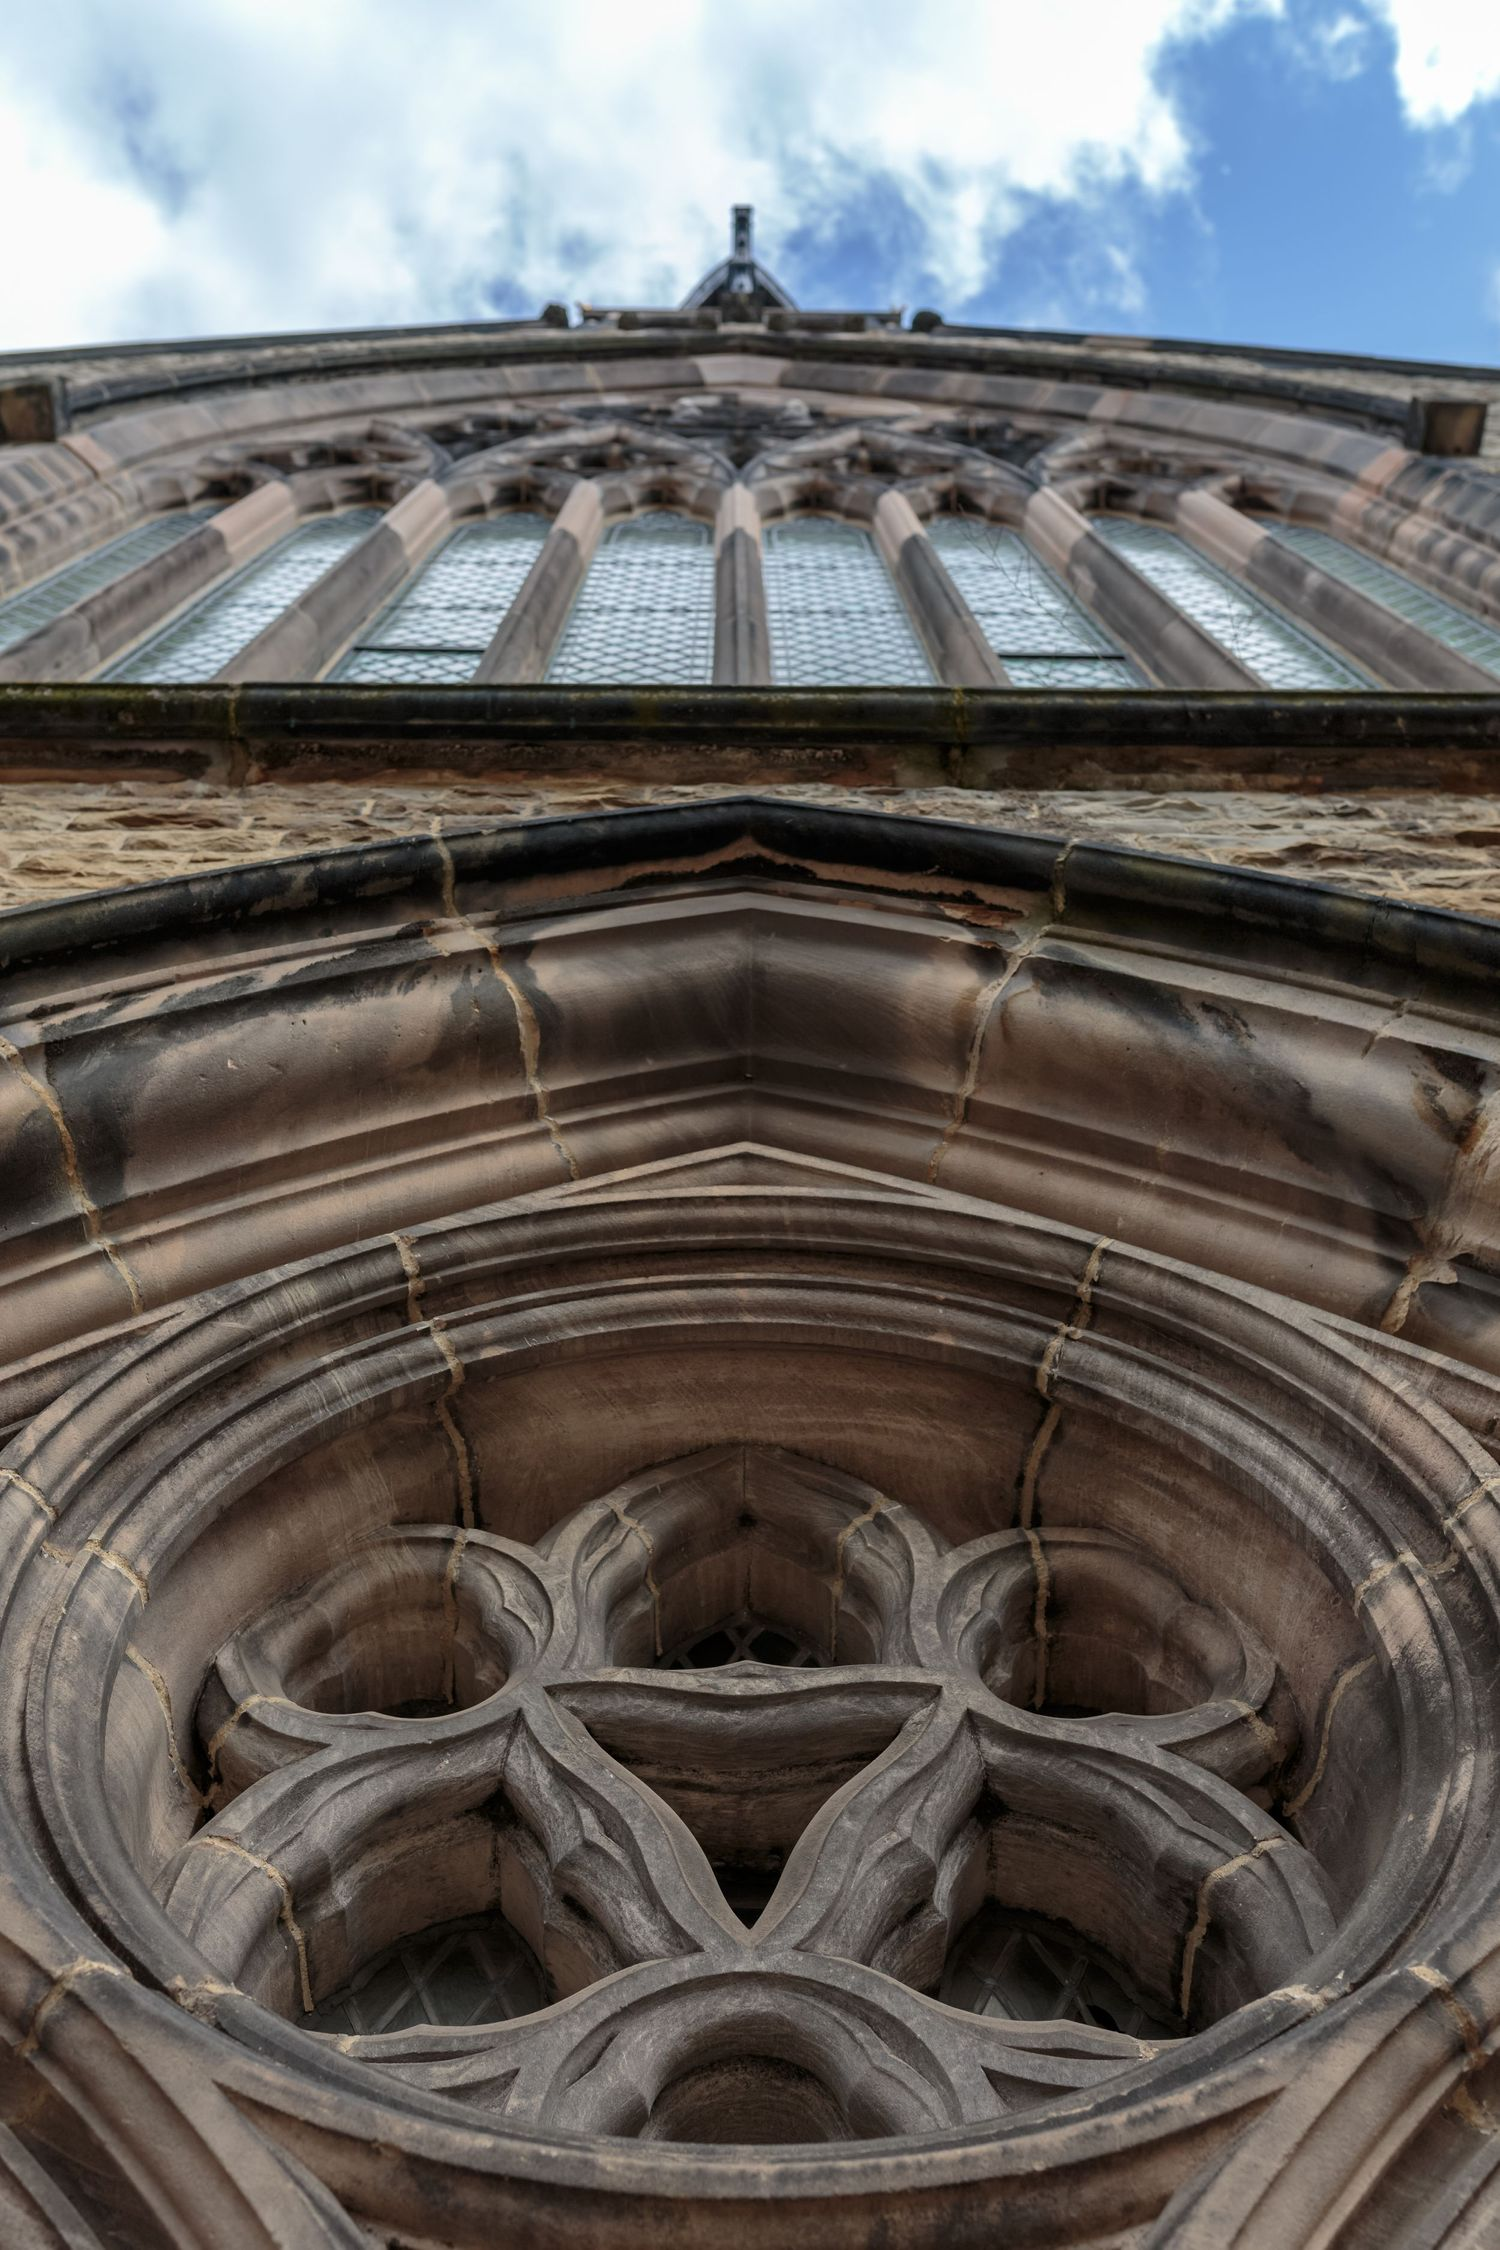 Shot straight up of the front of the ornate st.vincent de paul roman catholic church Liverpool city centre